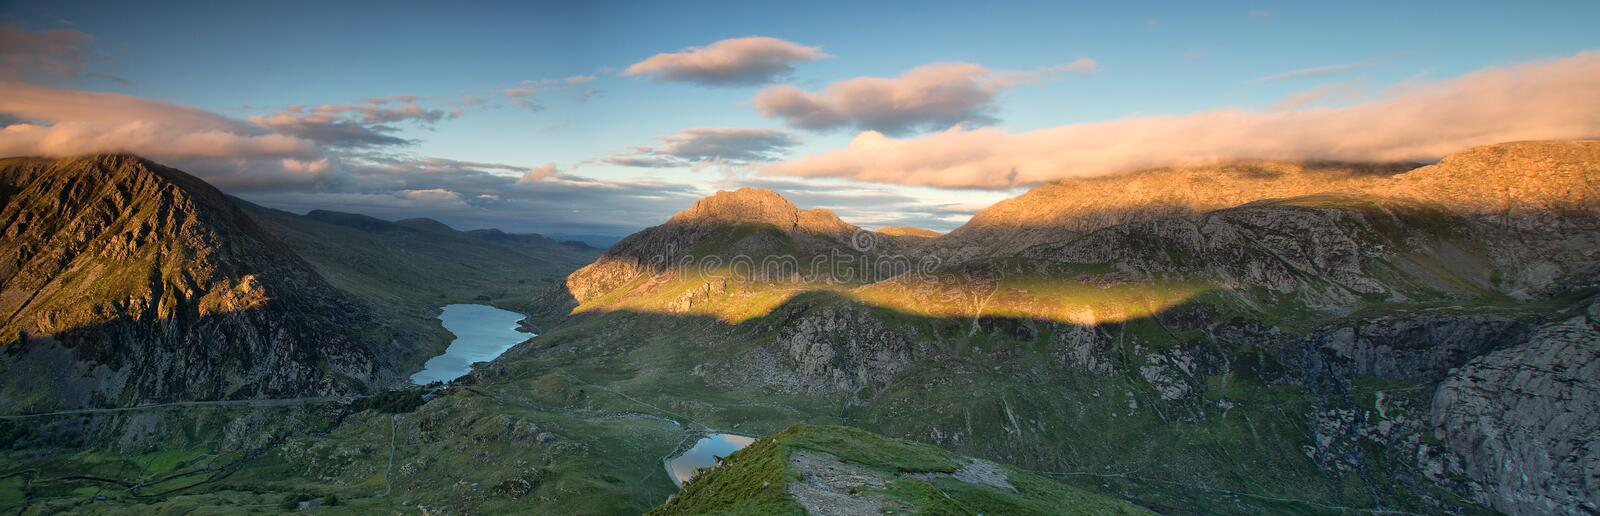 Tryfan panoramique image stock